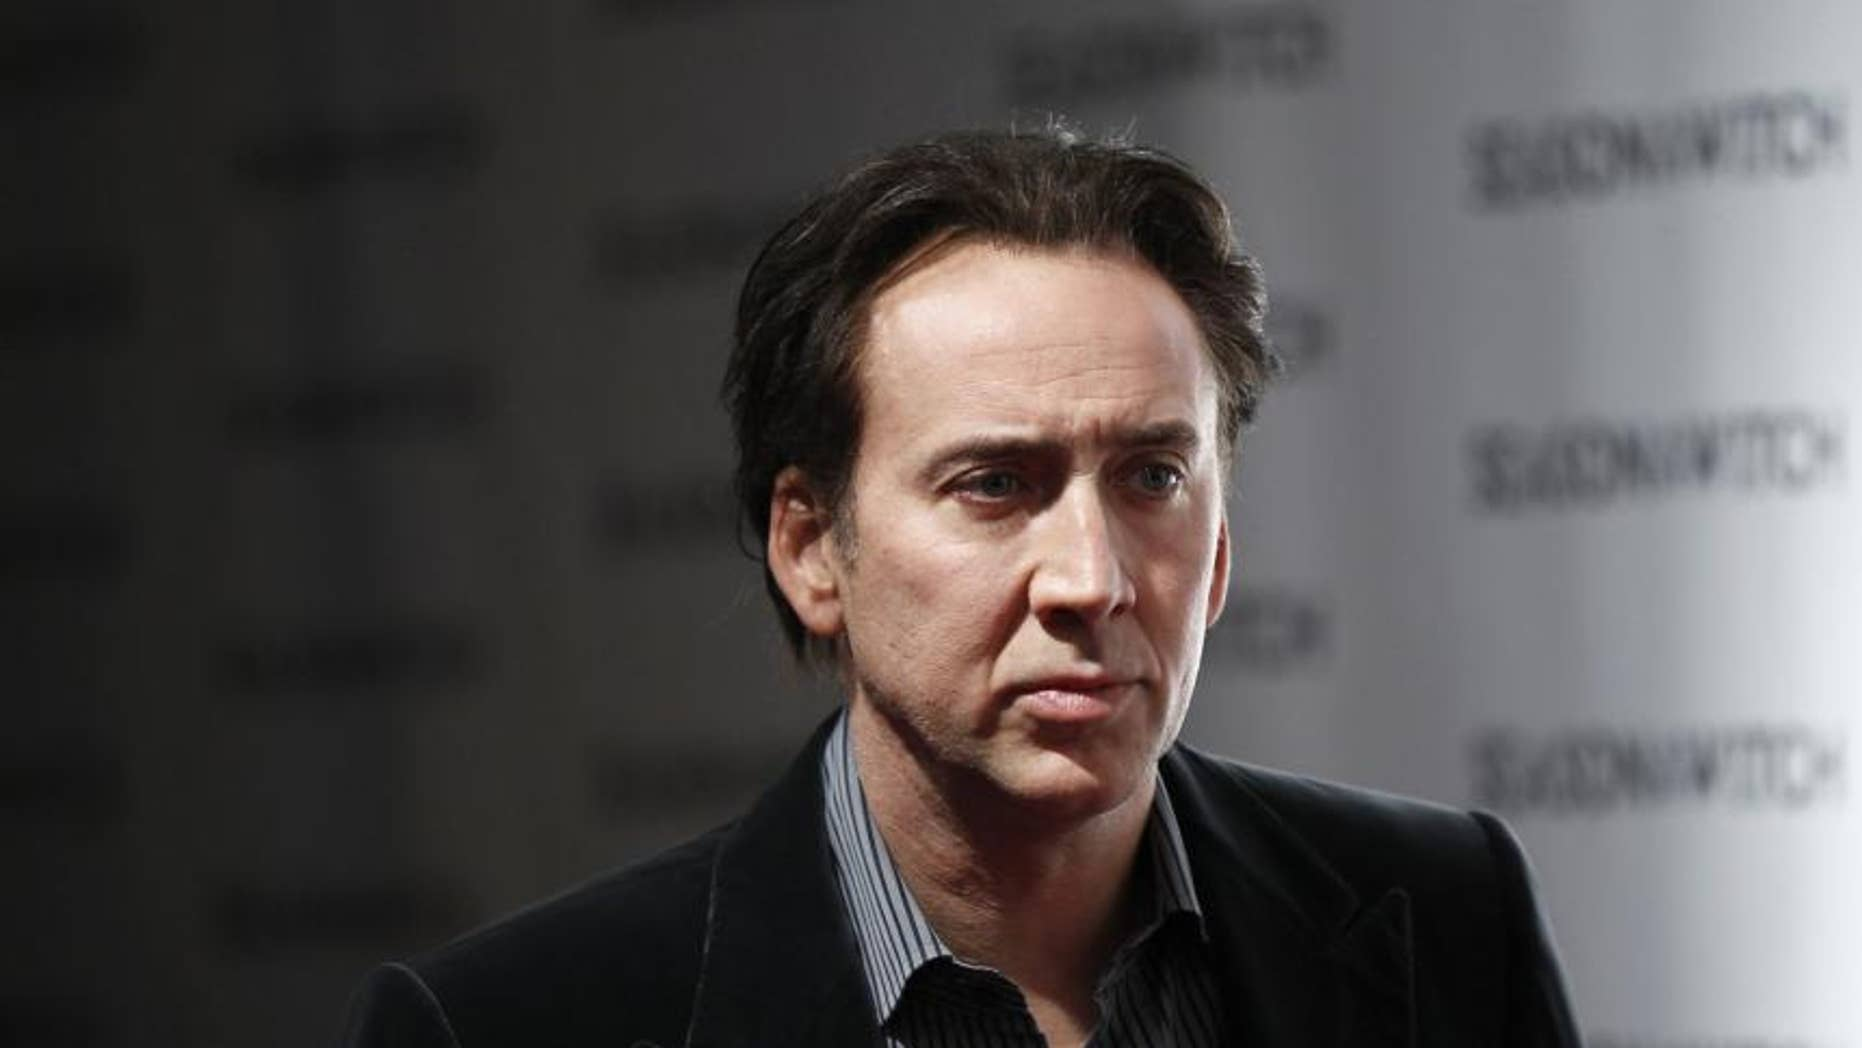 Nicolas Cage has been accused of abusingex-girlfriend Vickie Park in a recent request for a restraining order, according to court documents obtained by The Blast.